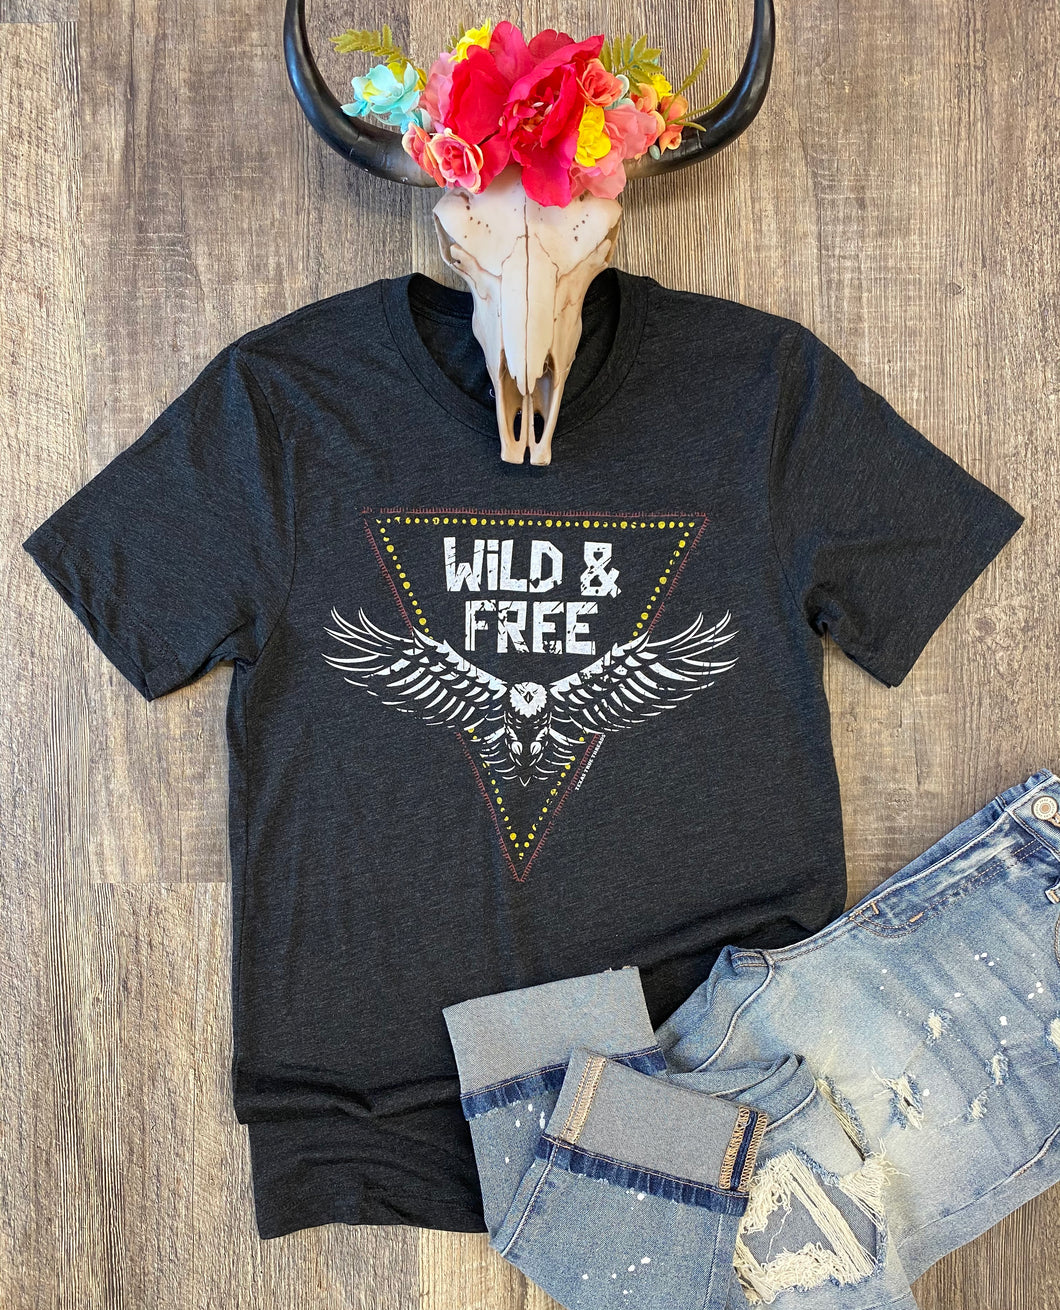 The Wild And Free T-Shirt